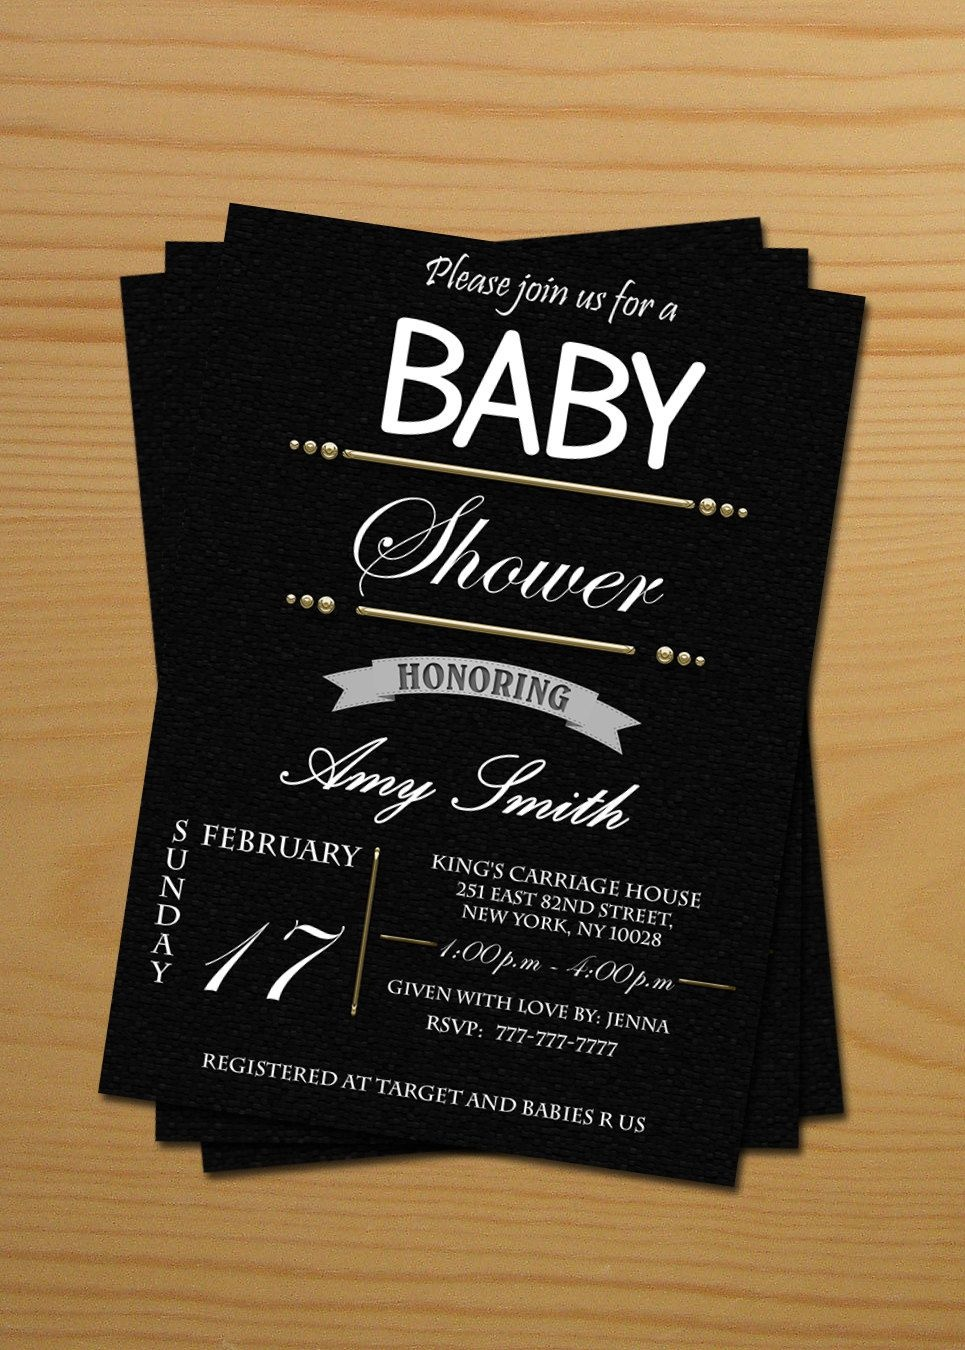 Neutral Baby Shower Invitations - Free Thank You Cards, Printable - Free Printable Black And White Baby Shower Invitations